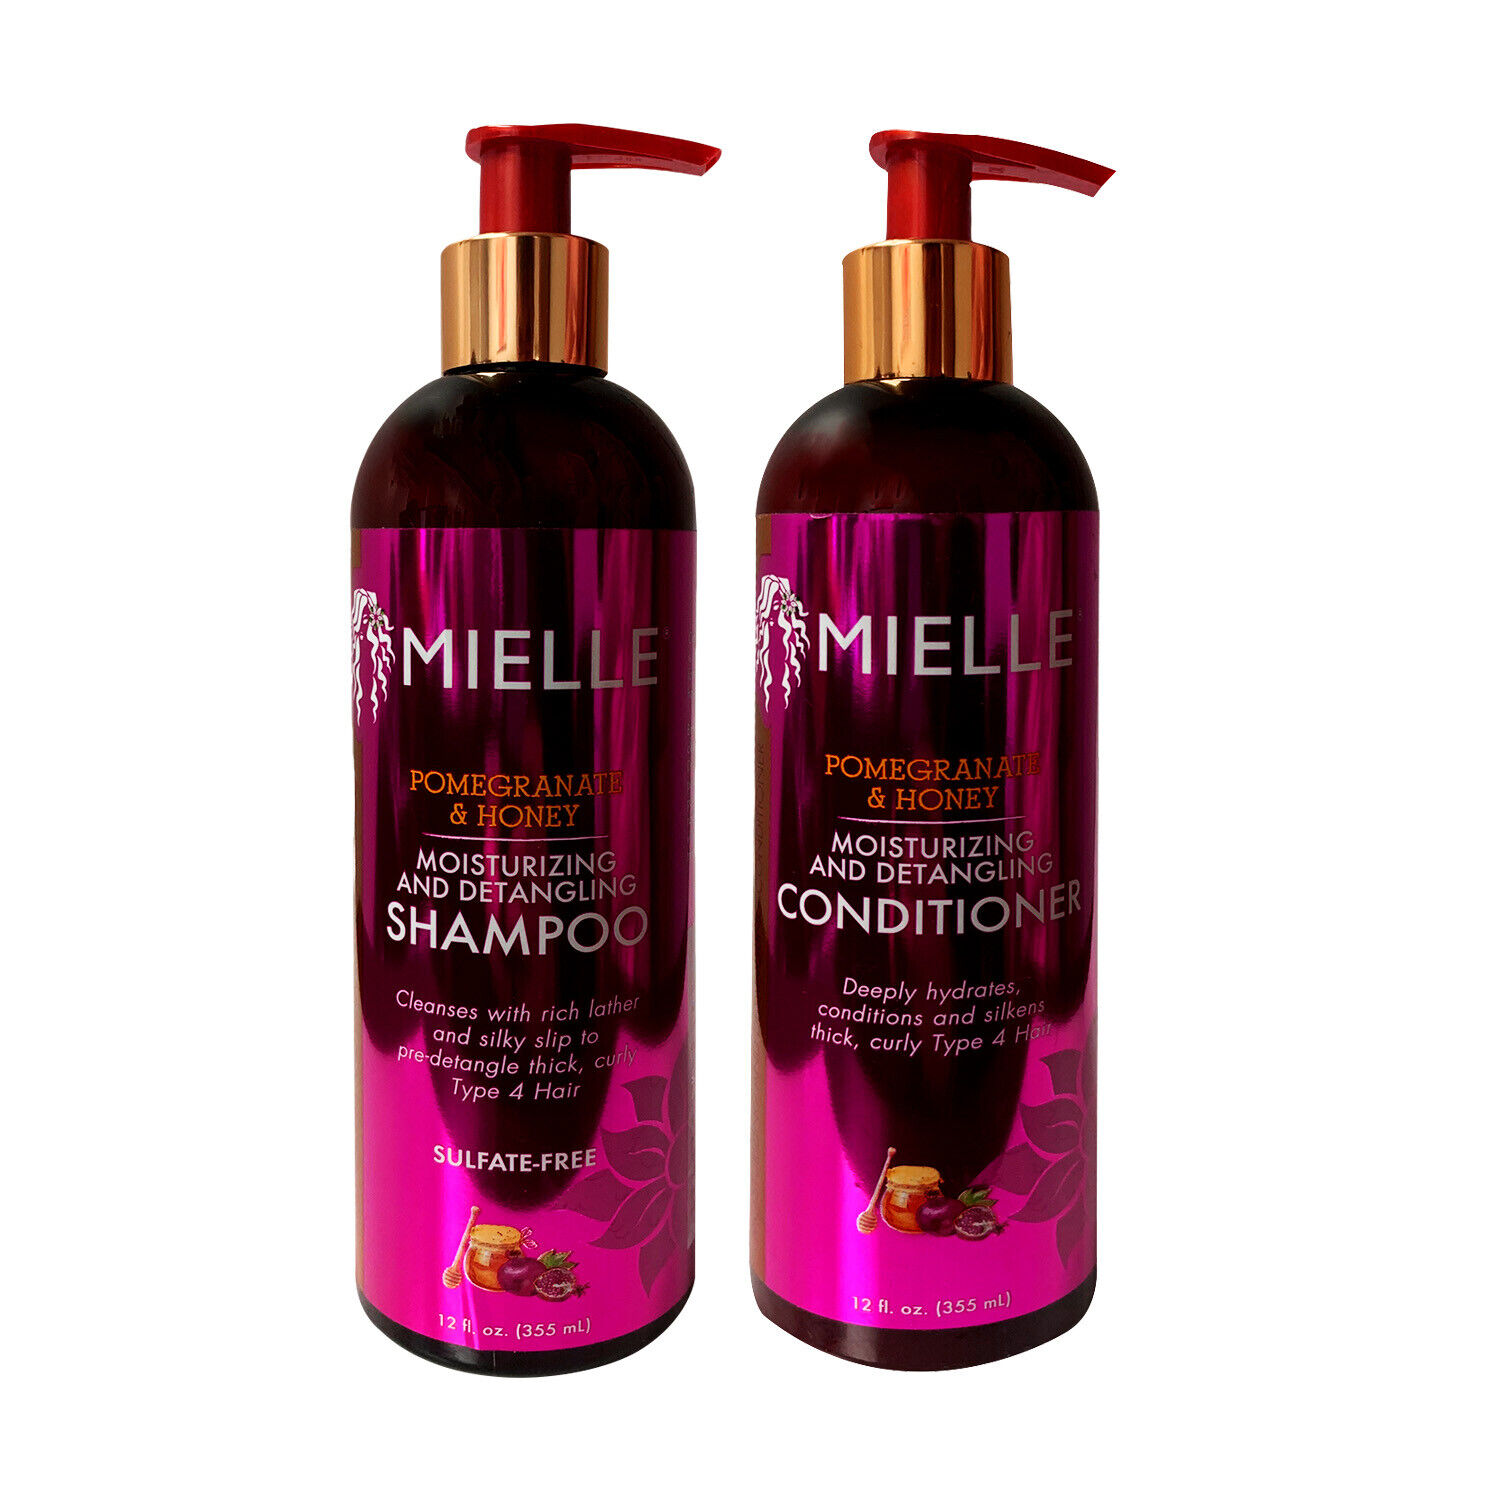 Mielle Organics Pomegranate & Honey Shampoo and Conditioner set (FREE SHIPPING) Hair Care & Styling